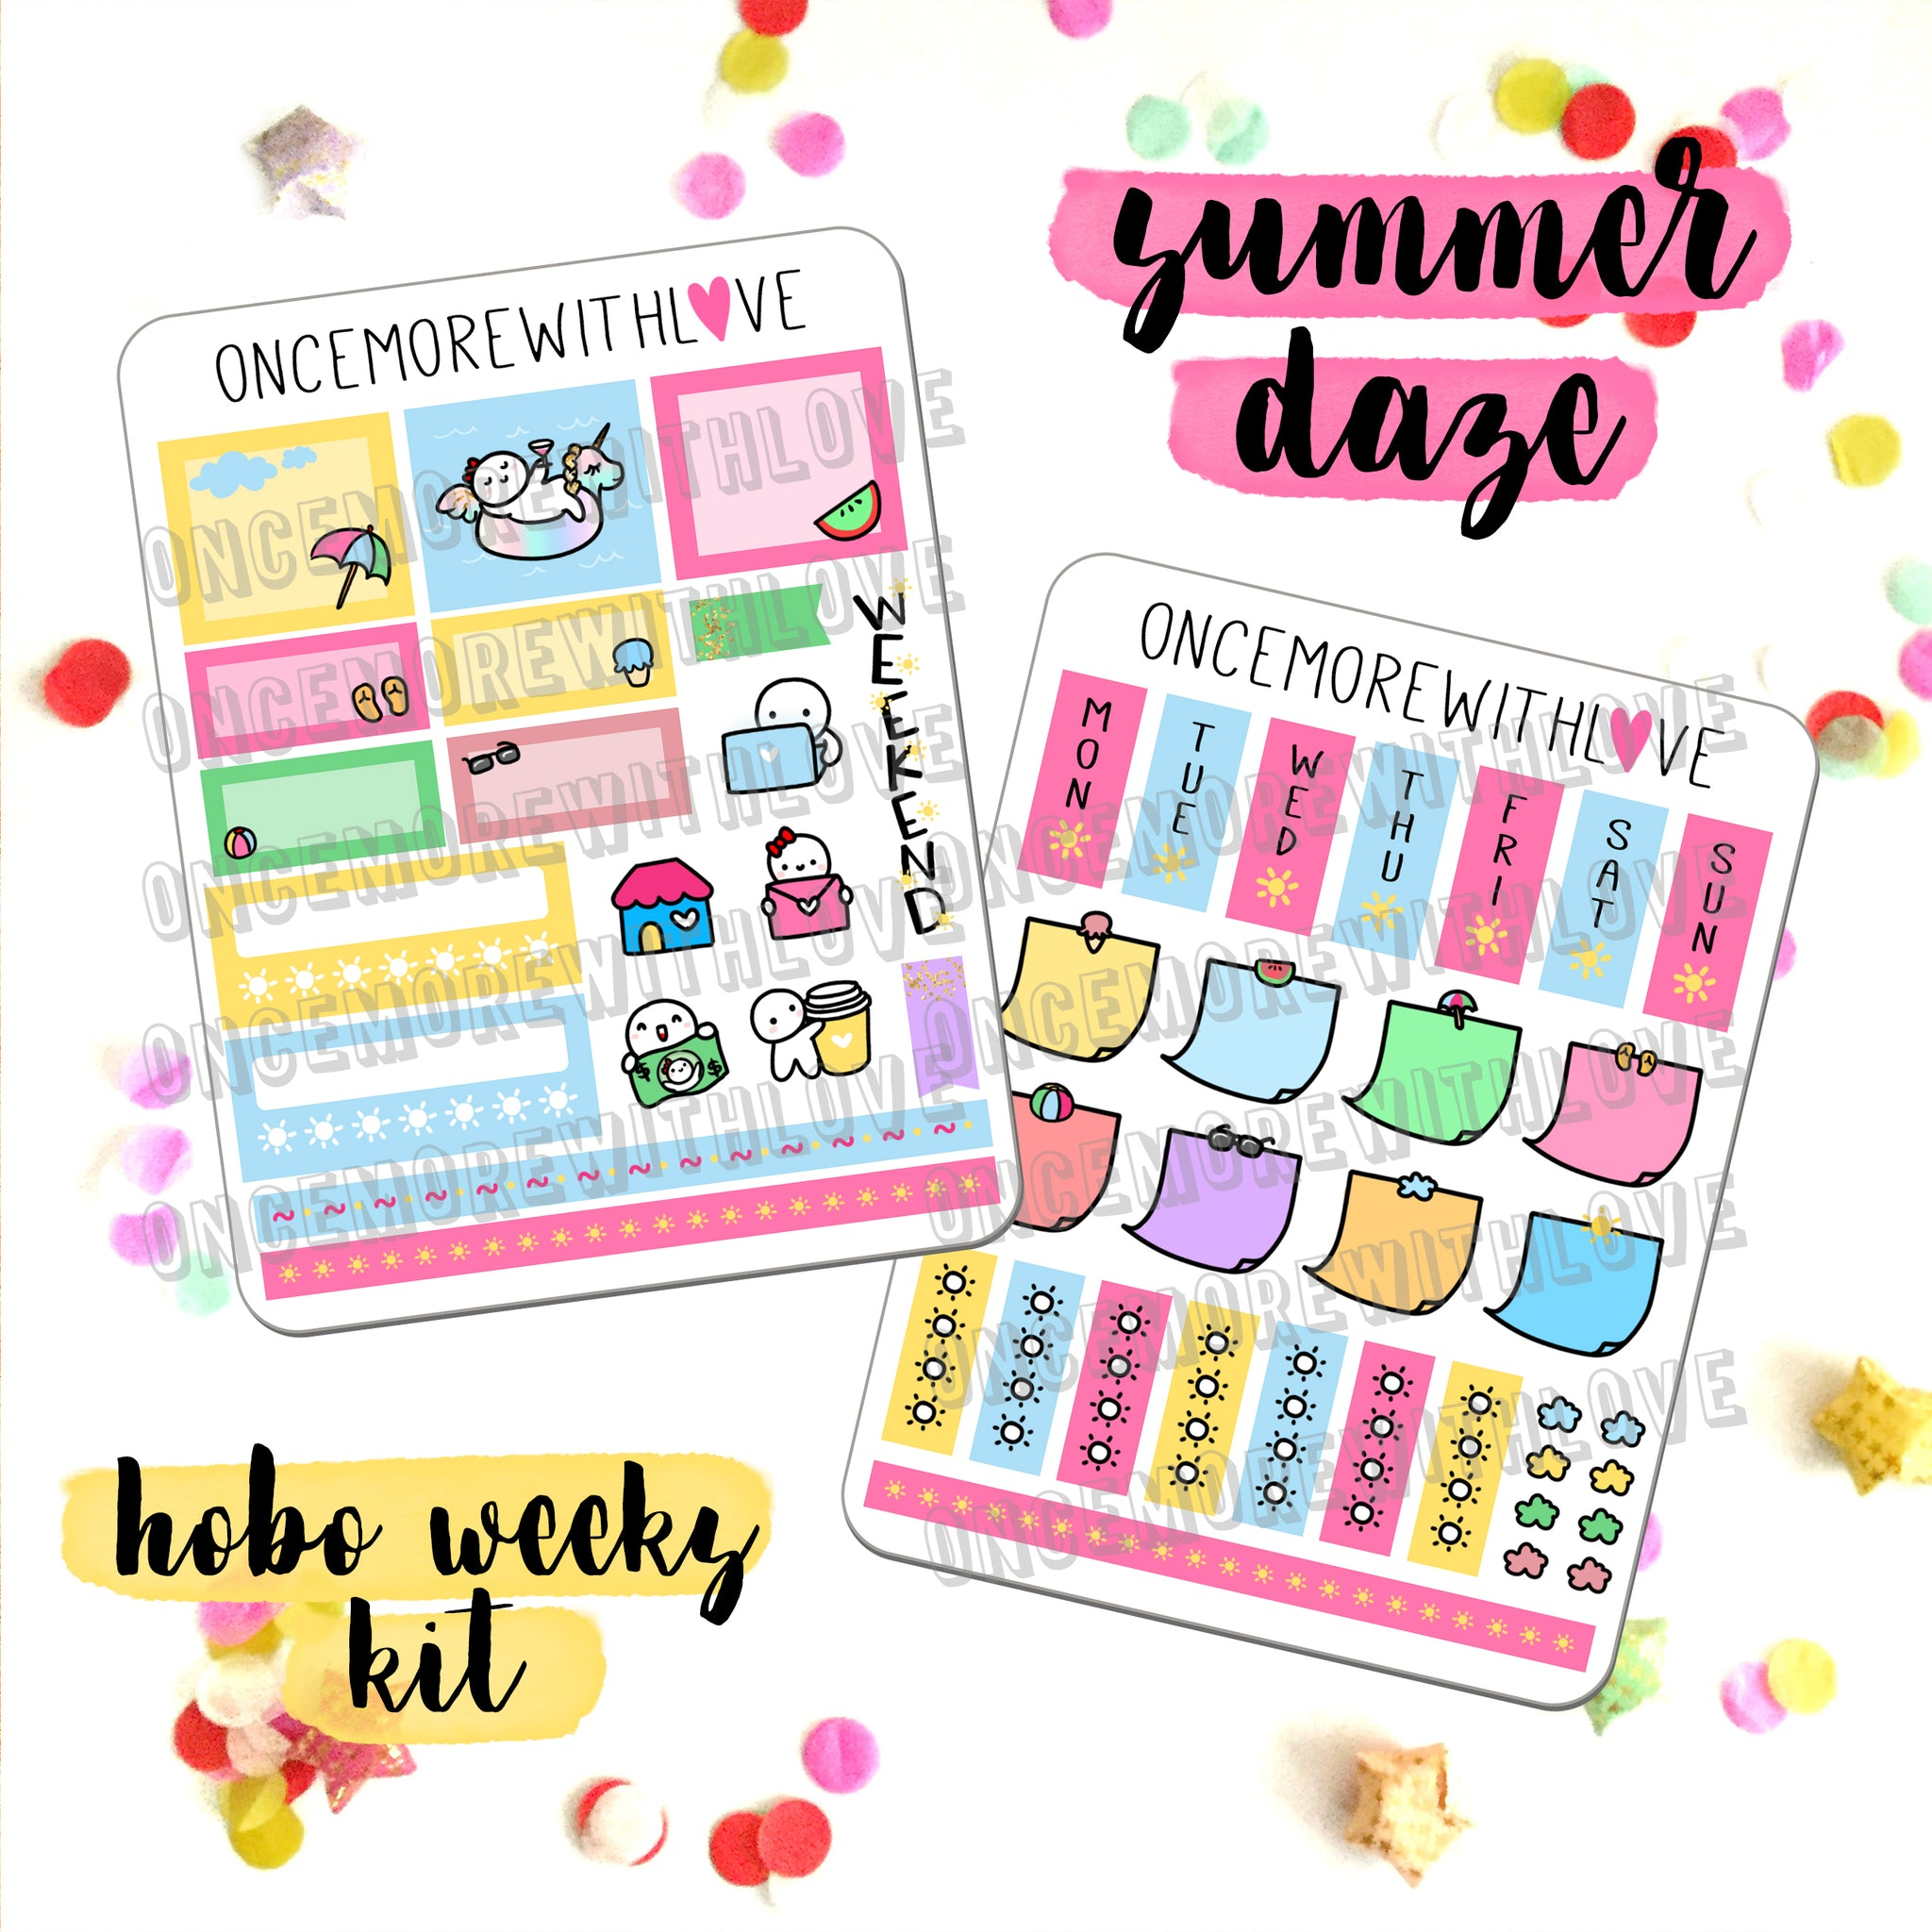 K12 - Summer Daze // Hobonichi Weeks Kit